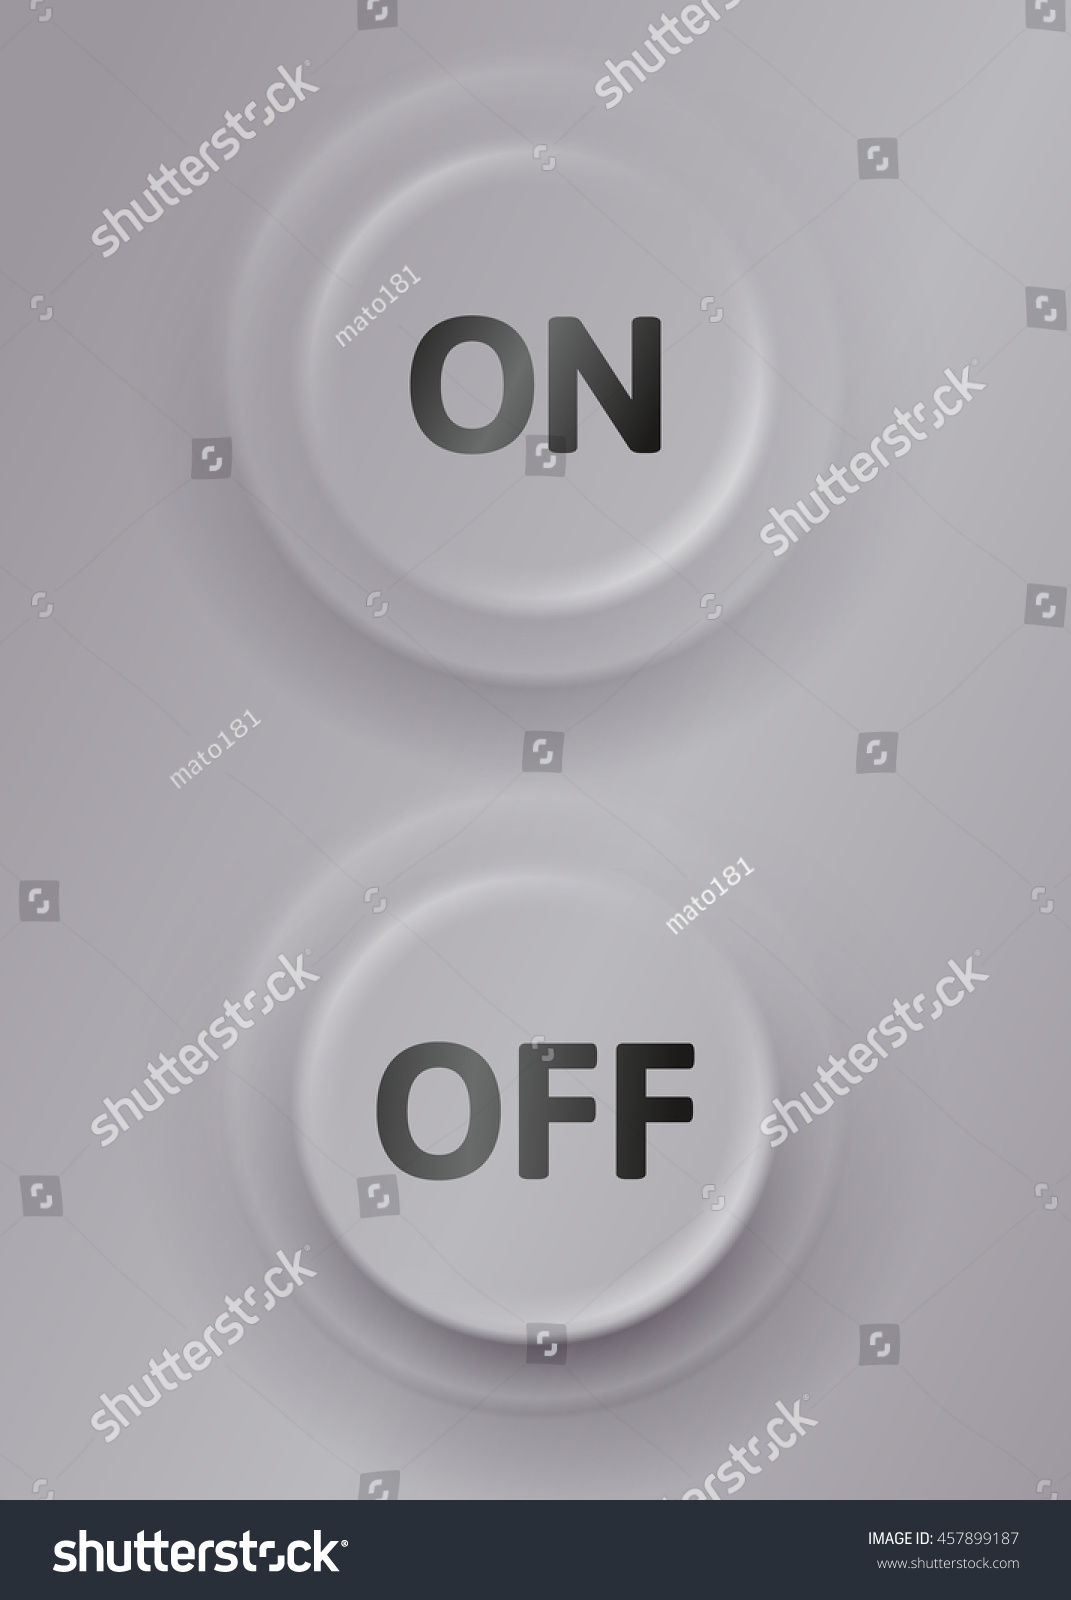 Turn Off Turn On Switch Vector Stock Vector Royalty Free 457899187